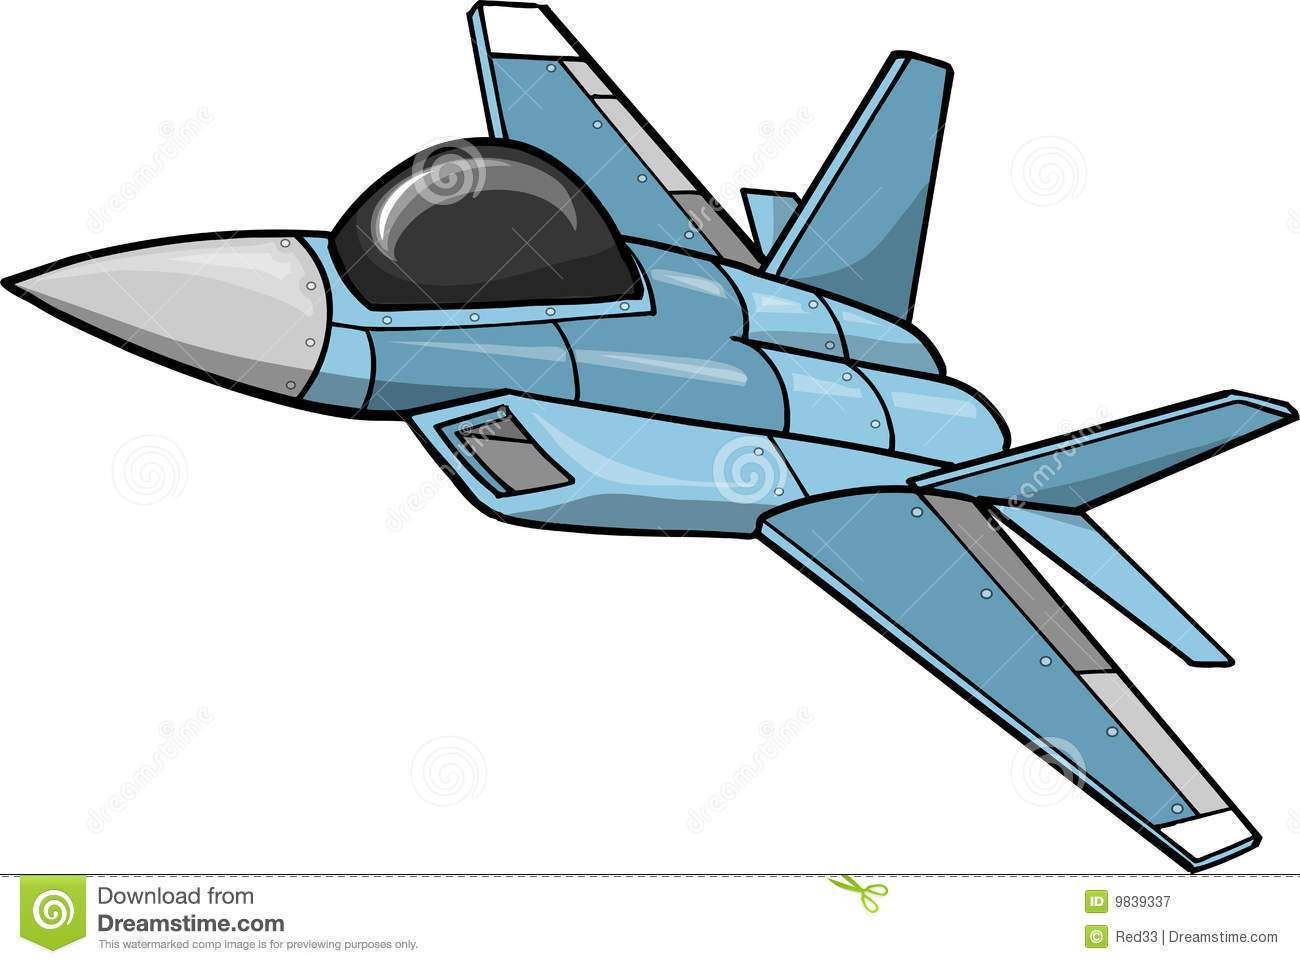 clipart of jet - photo #1